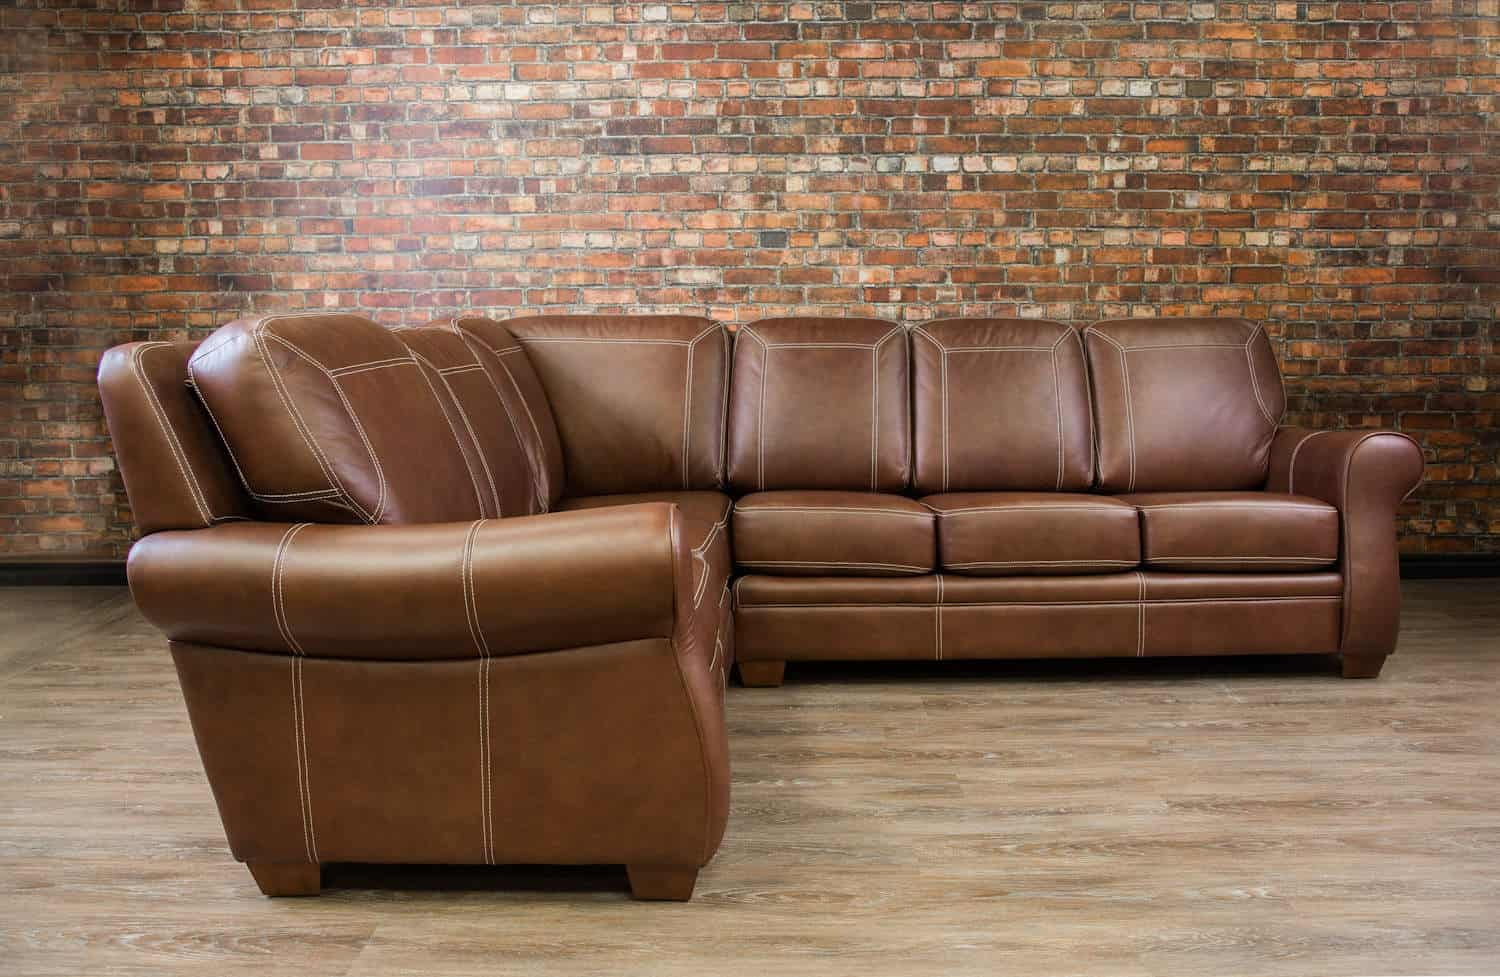 The Humber Leather Sectional Canada S Boss Leather Sofas